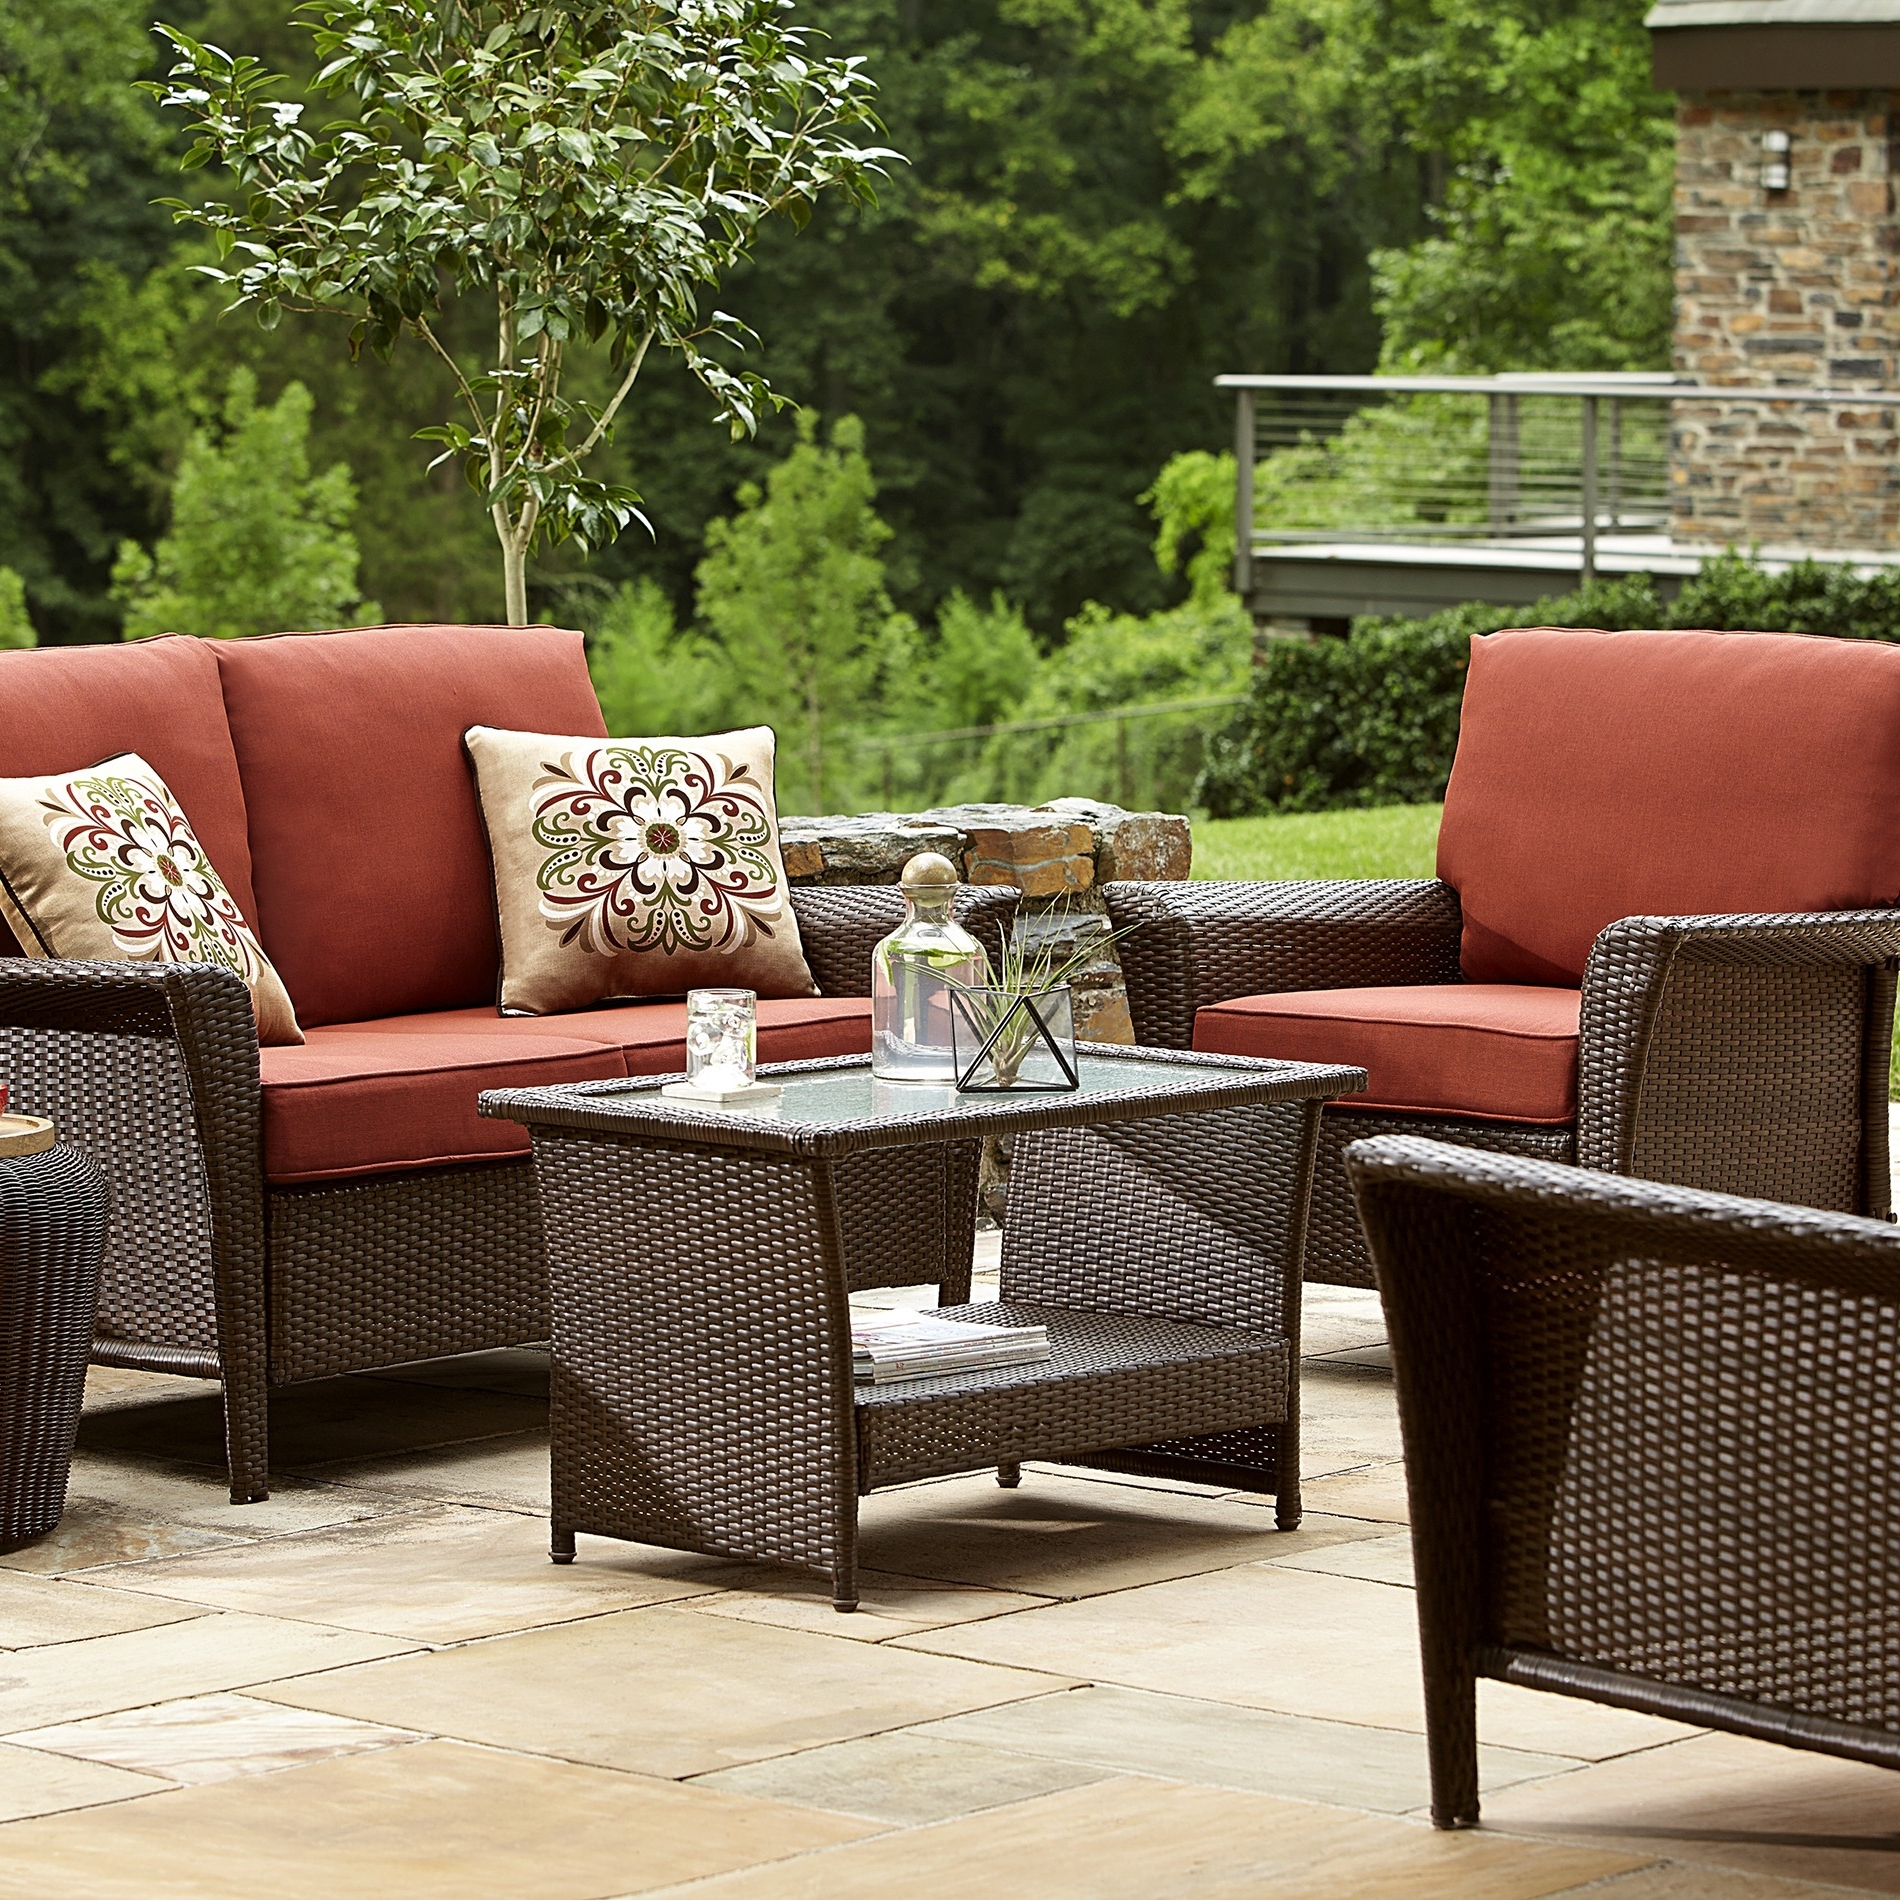 Preferred Fantastic Deep Seating Patio Furniture Clearance Dã©Cor Gallery With Sears Patio Furniture Conversation Sets (View 8 of 15)